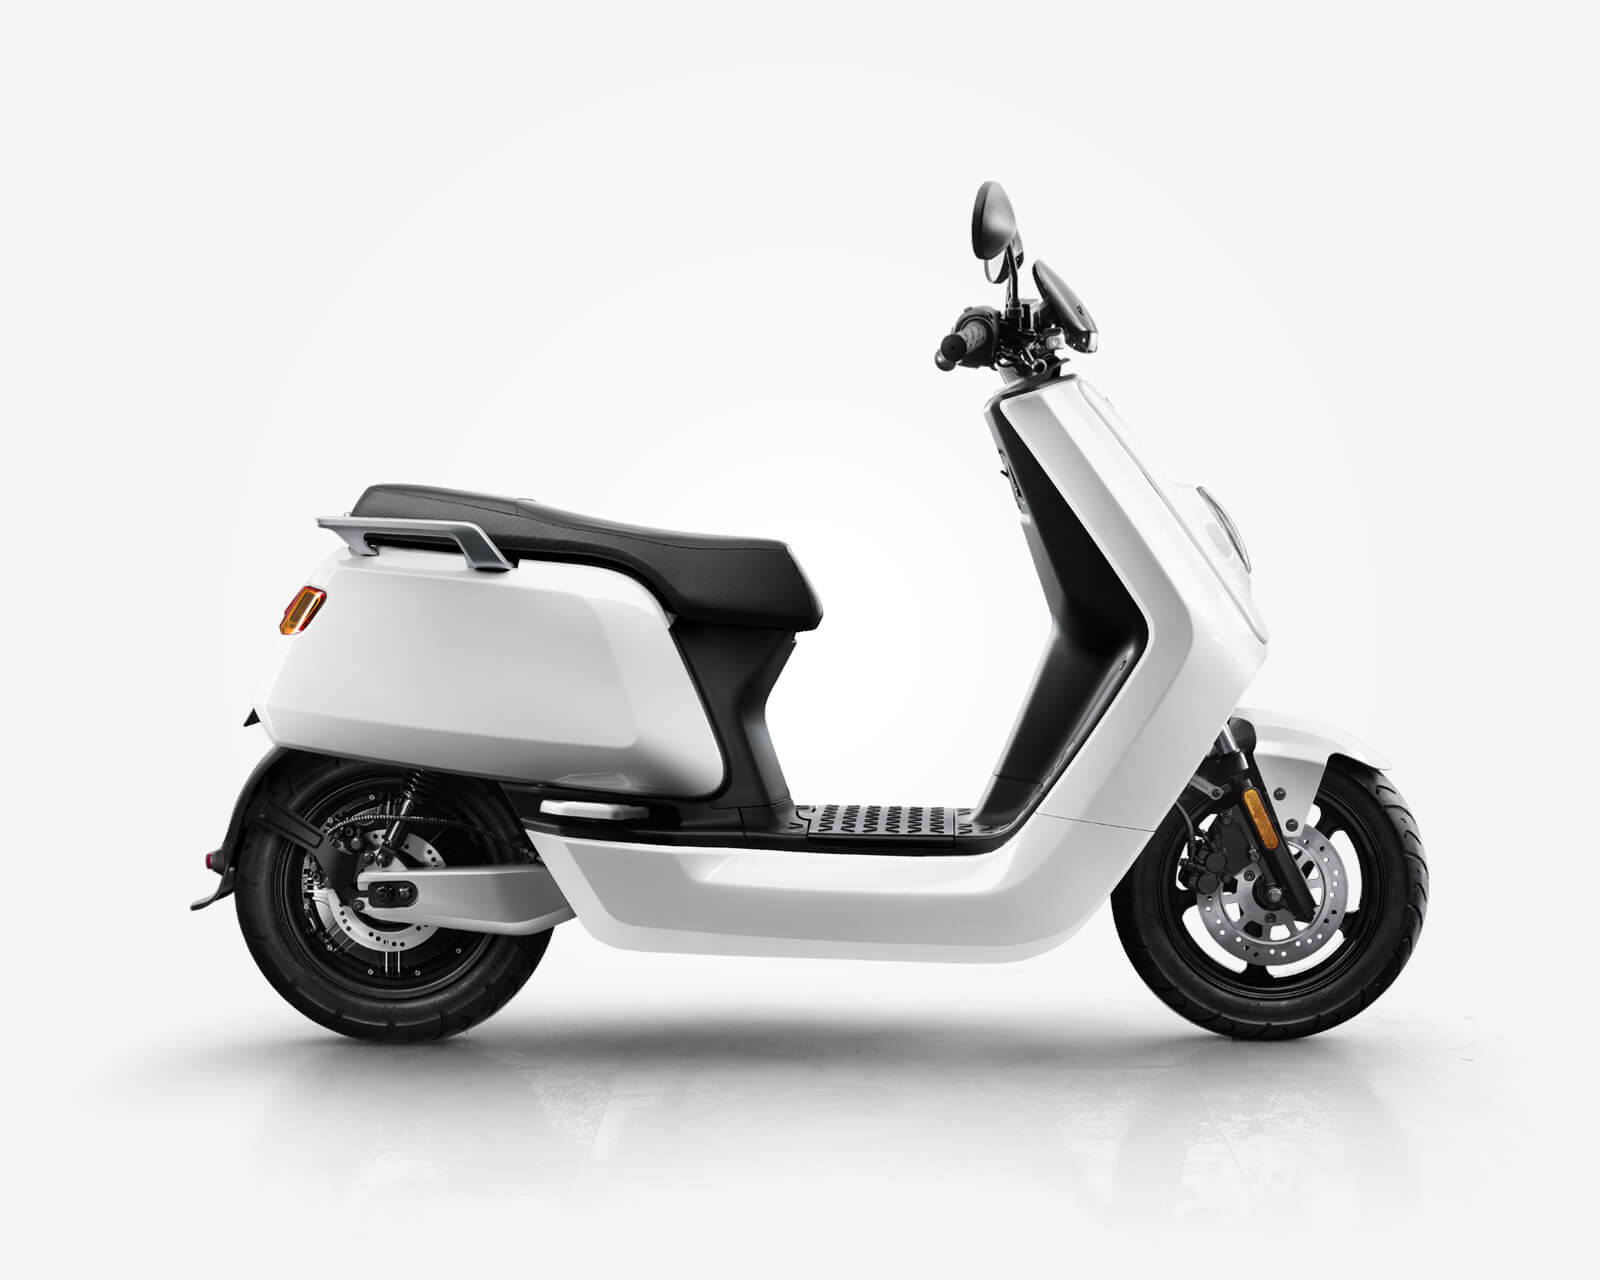 Scooter electrique 125 - niu-paris